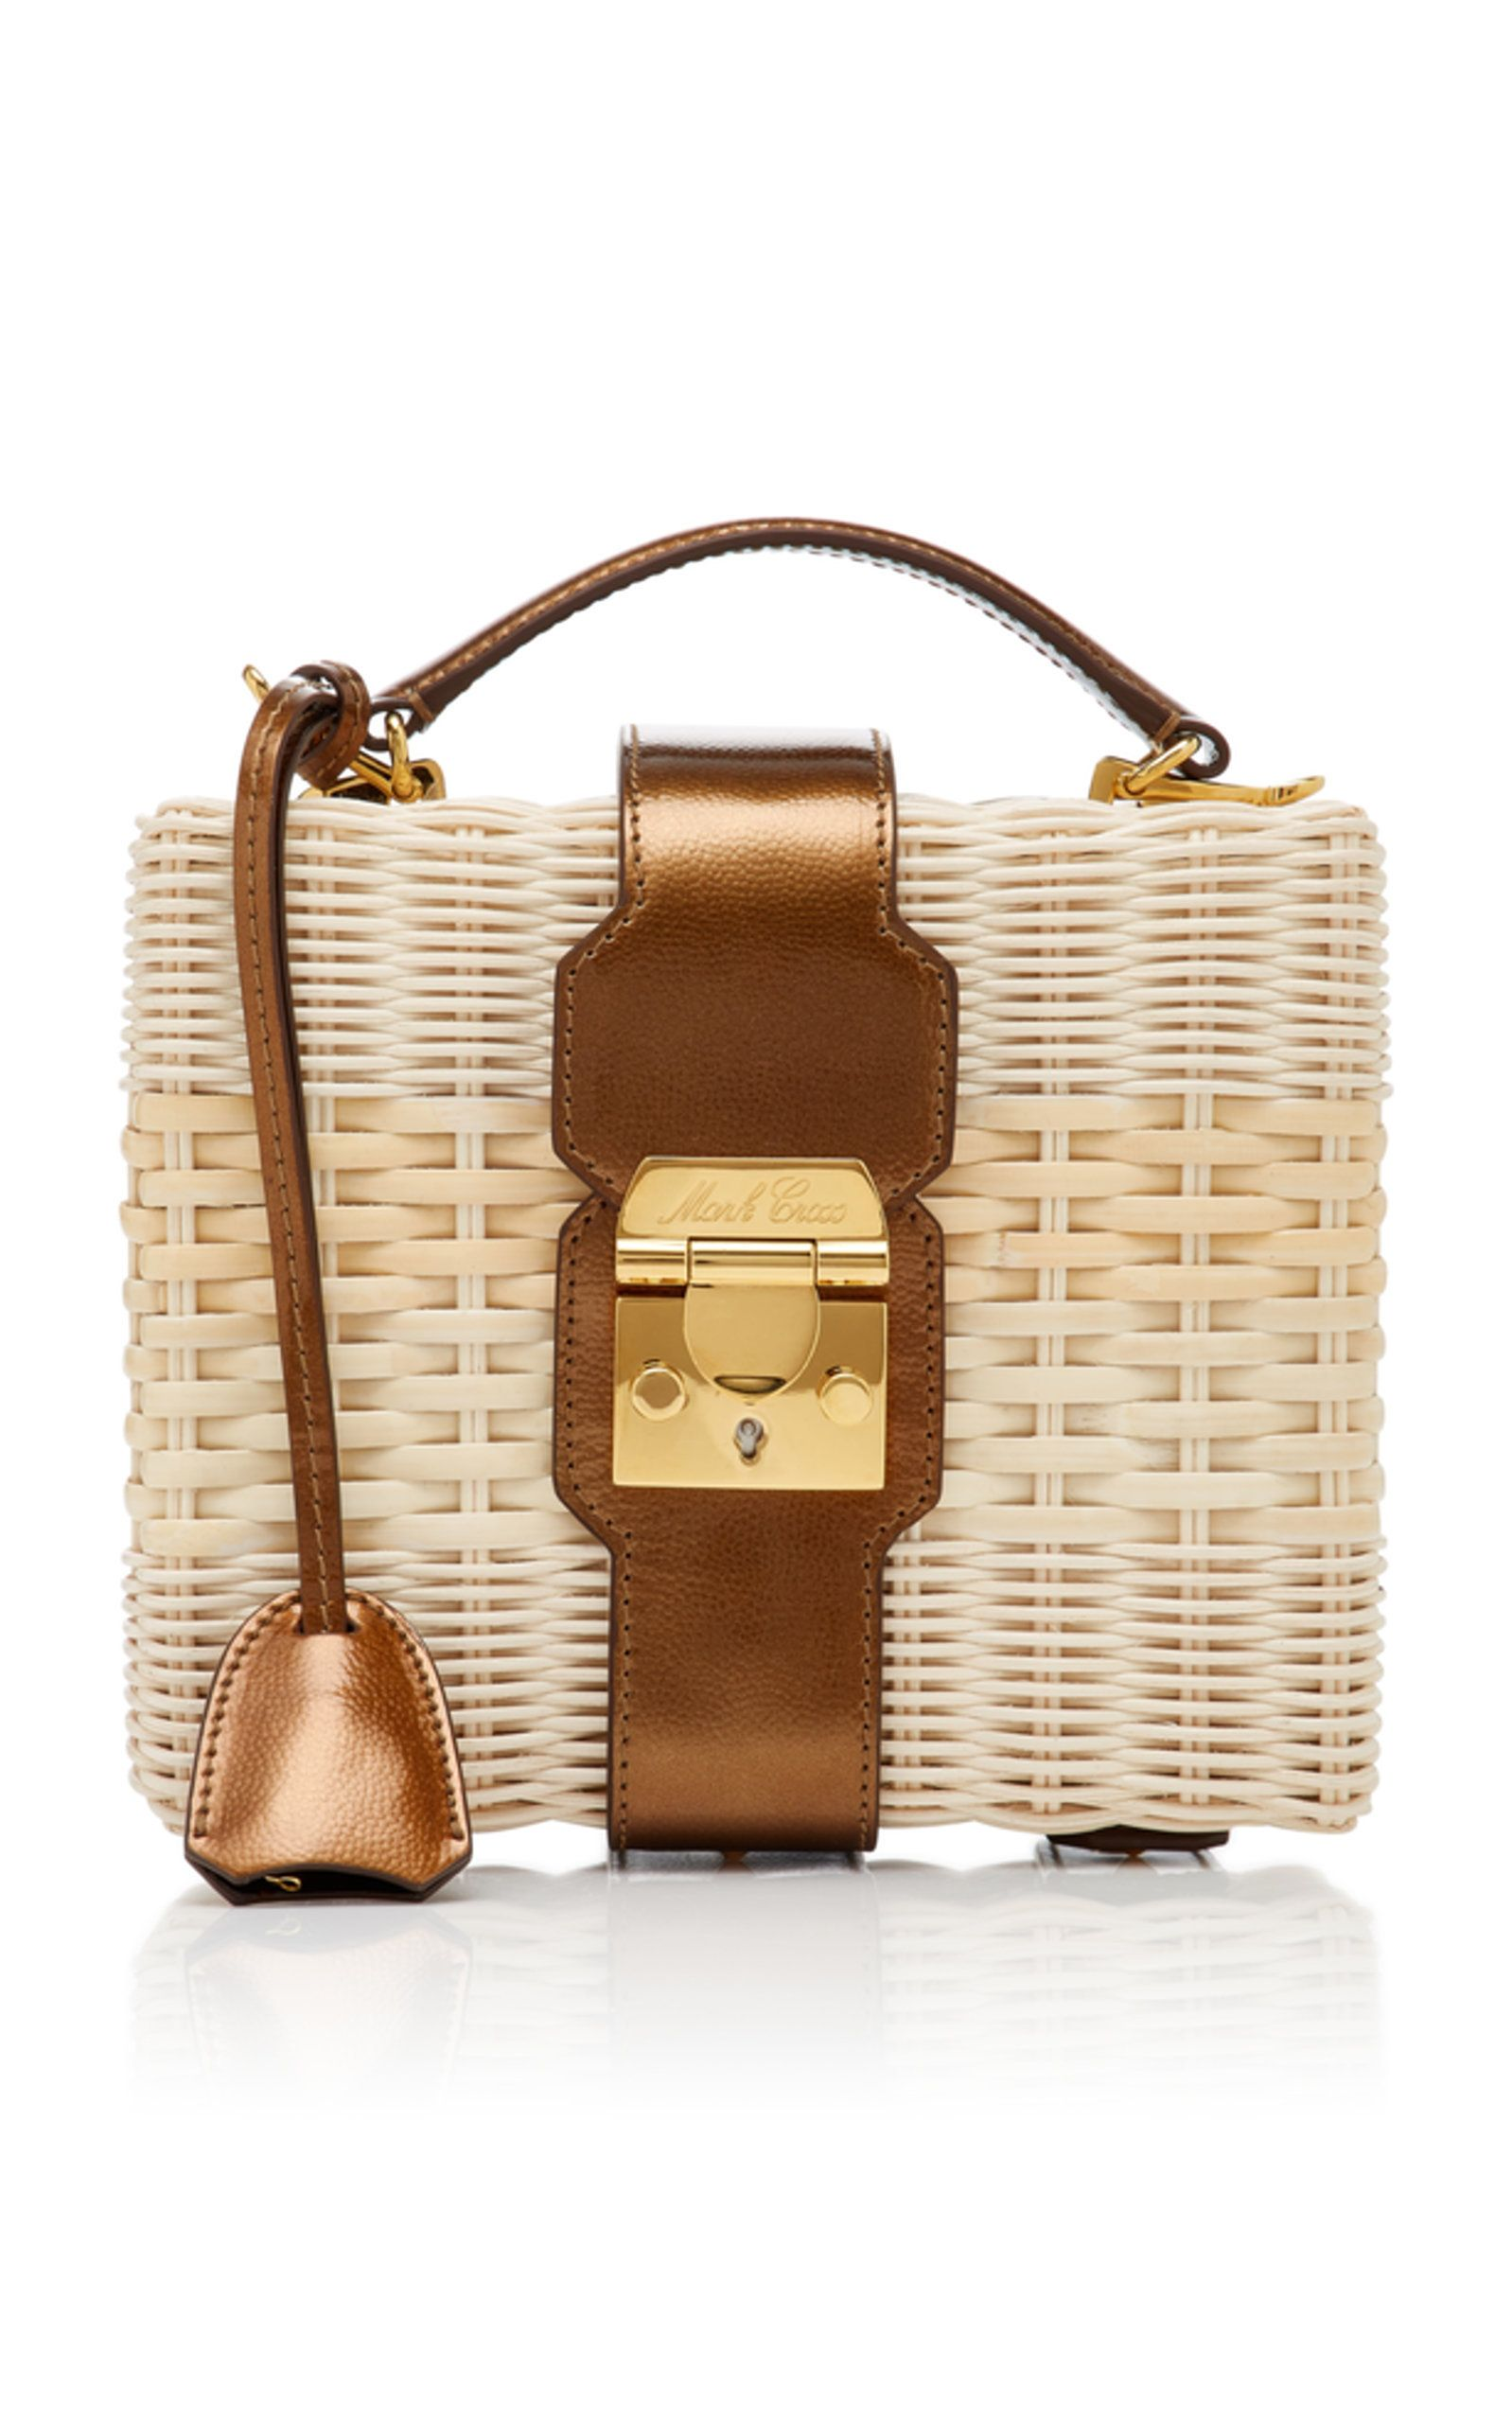 f3ab093973d2 Harley Metallic Leather-Trimmed Rattan Bag in 2019